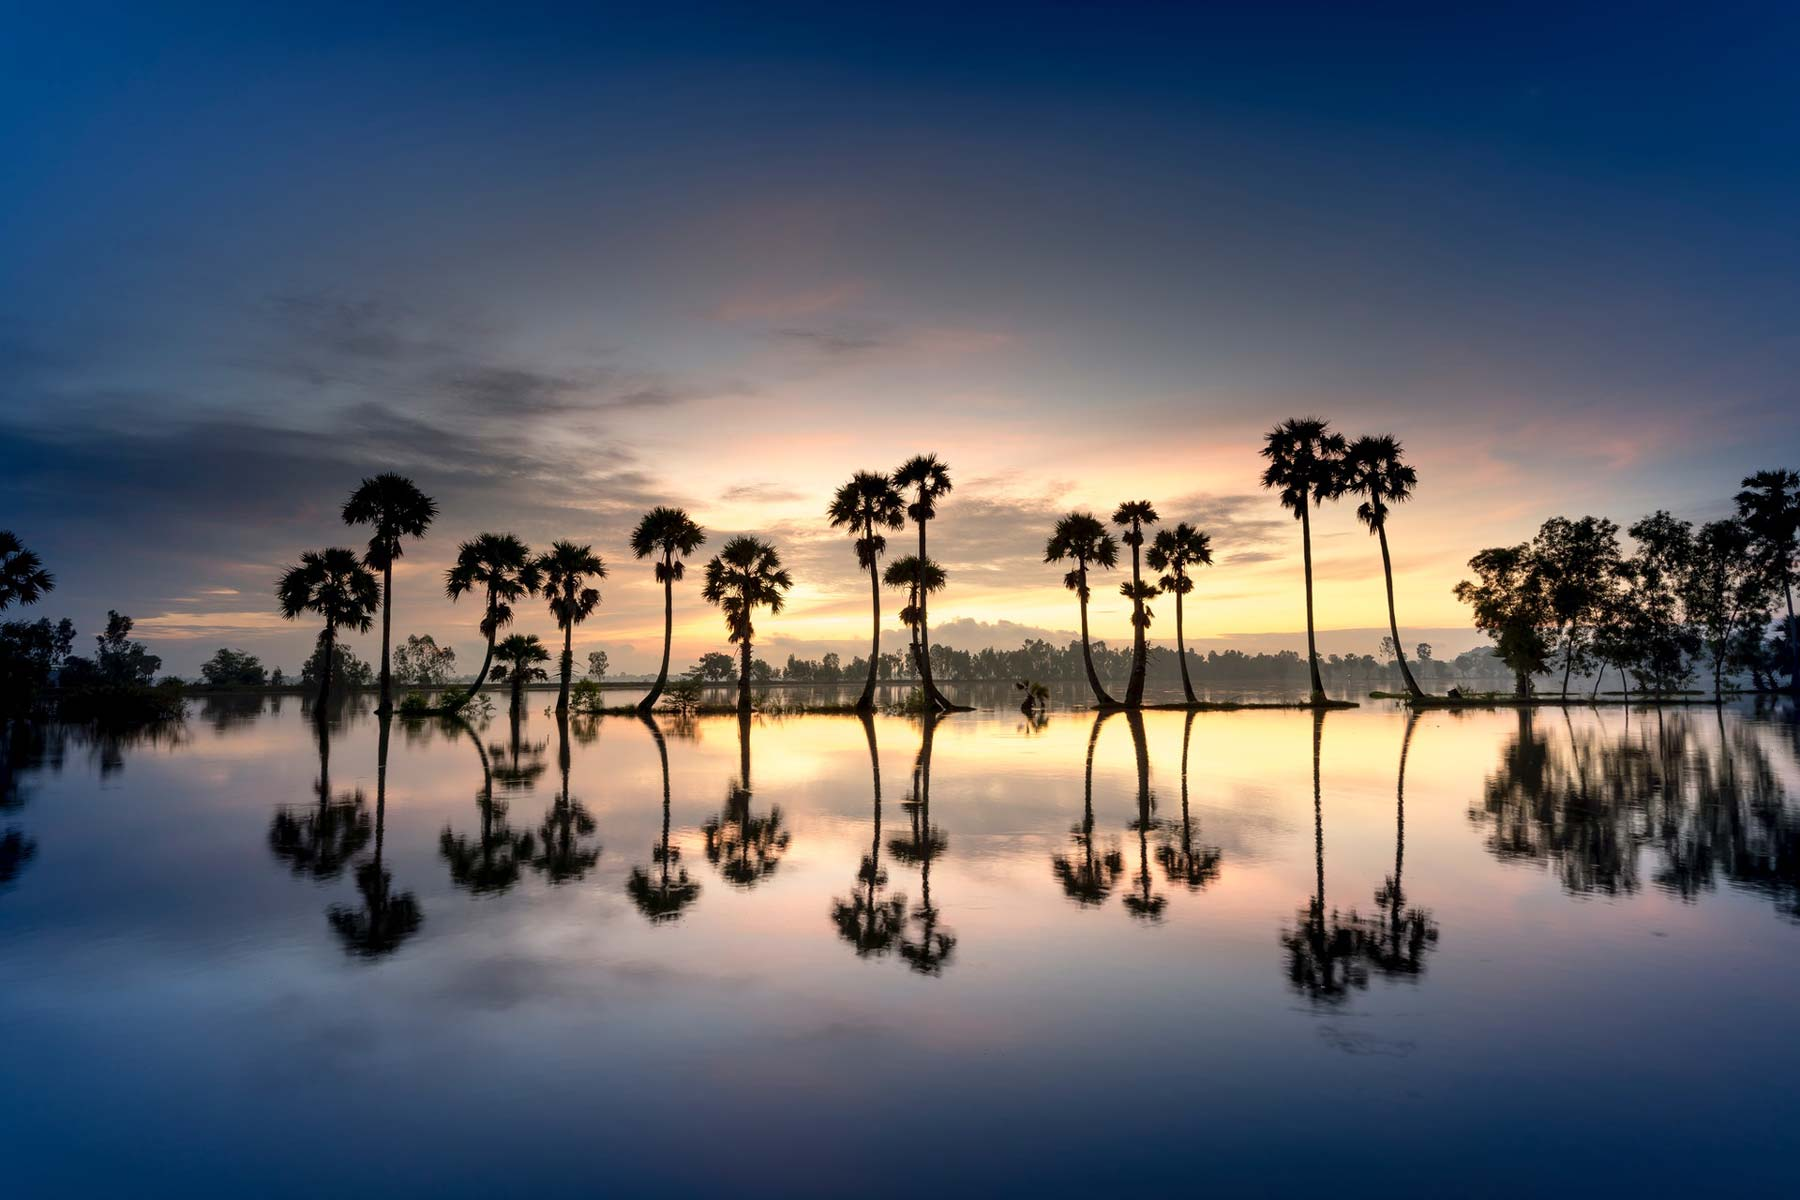 Image of palm trees reflecting on water